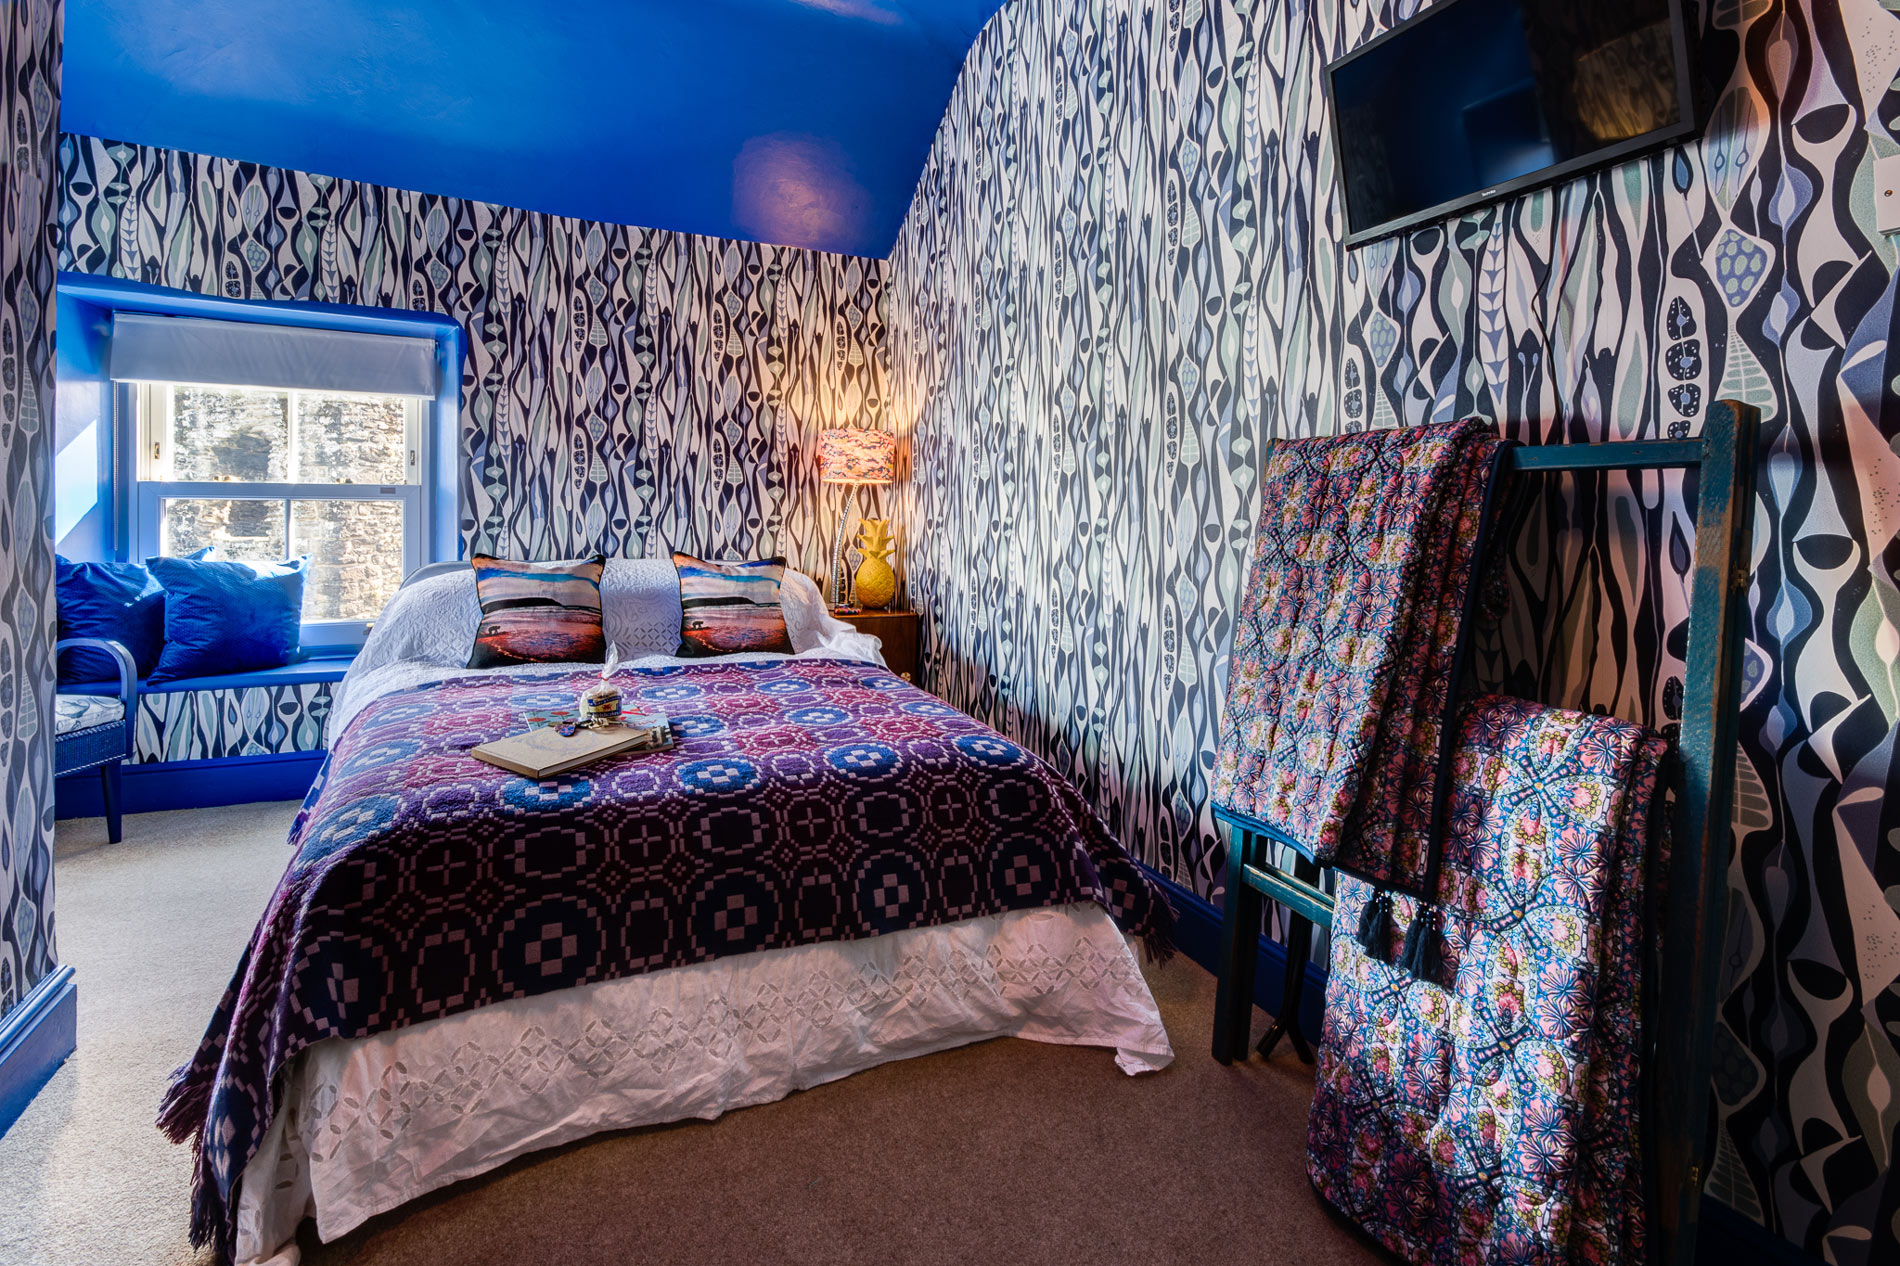 Bed And Breakfast in Conwy